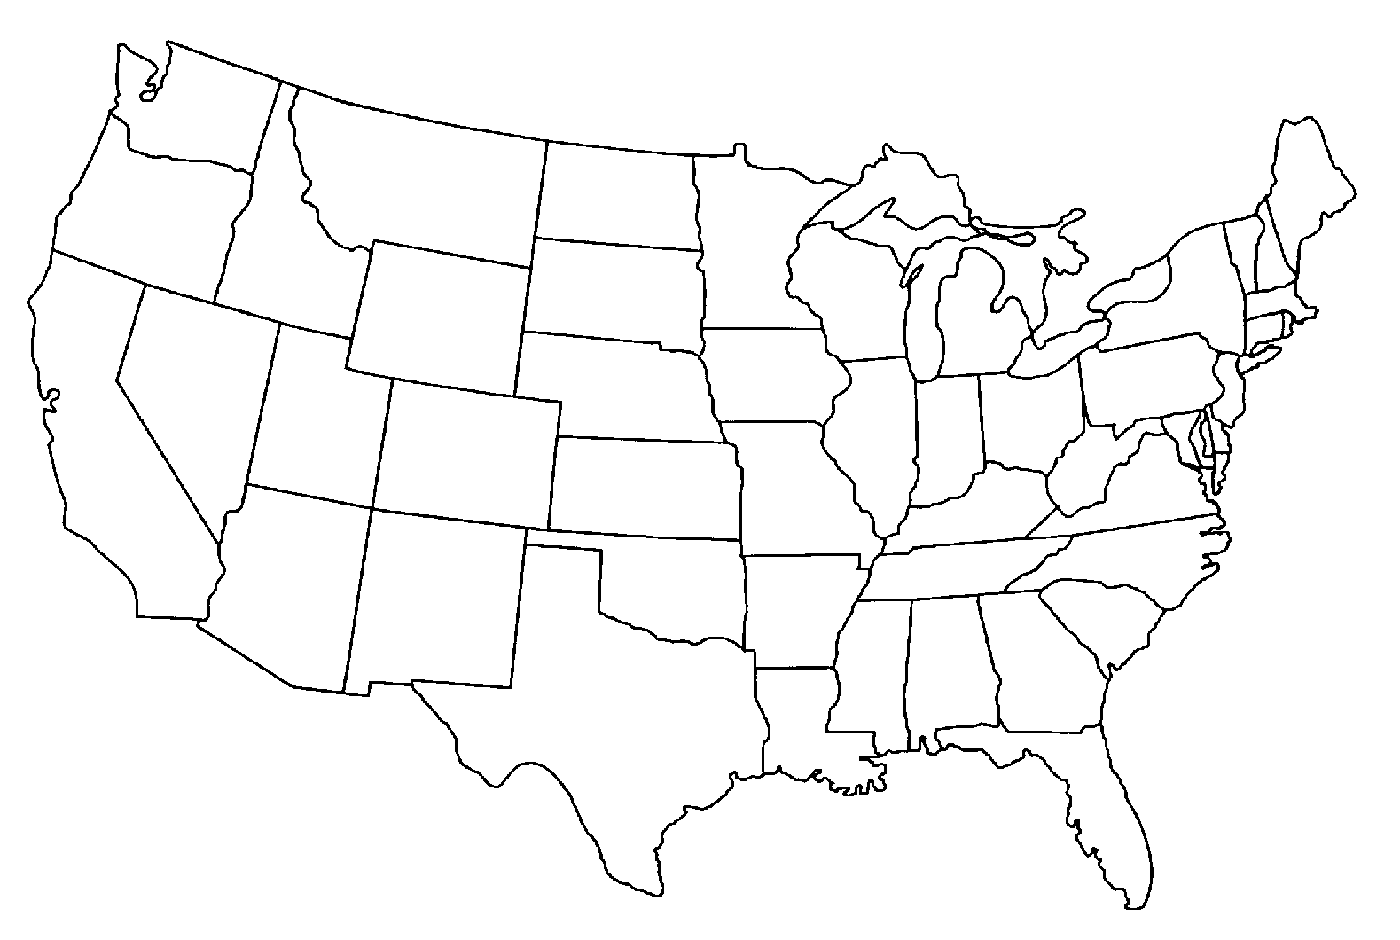 Blank Maps Of The US And Other Countries That Blank School Map - Usa country map outline